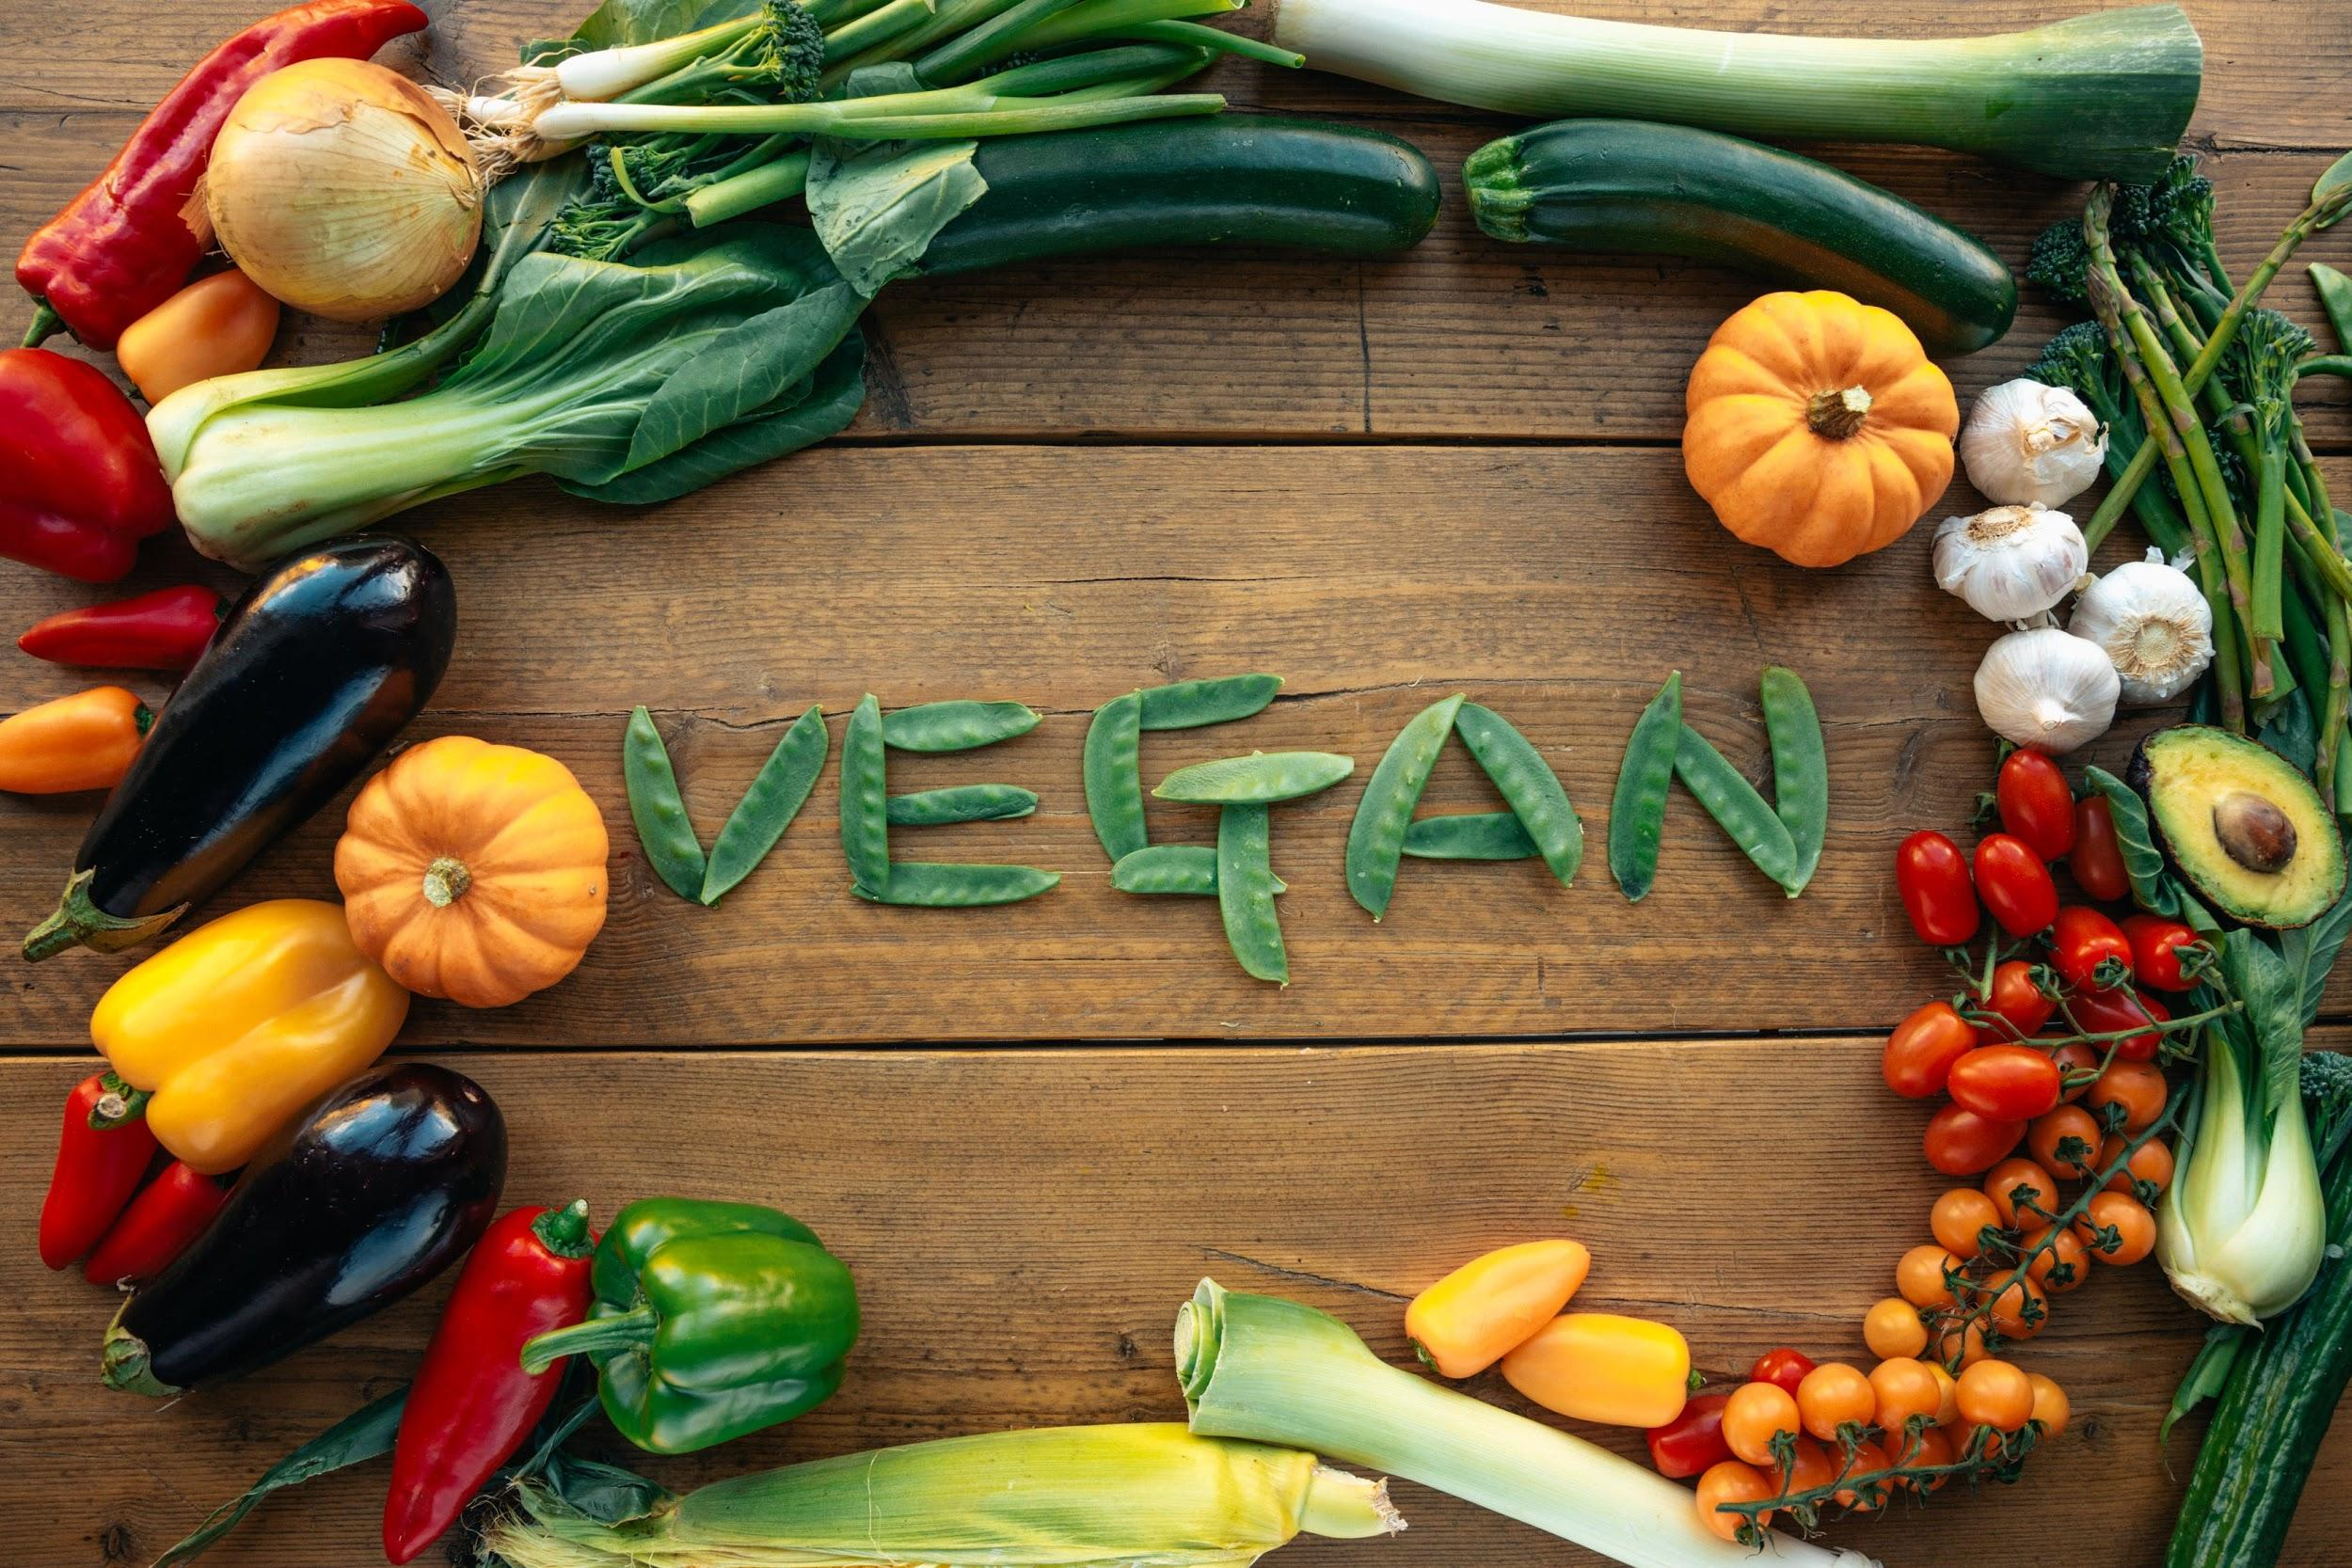 Vegan diet benefits